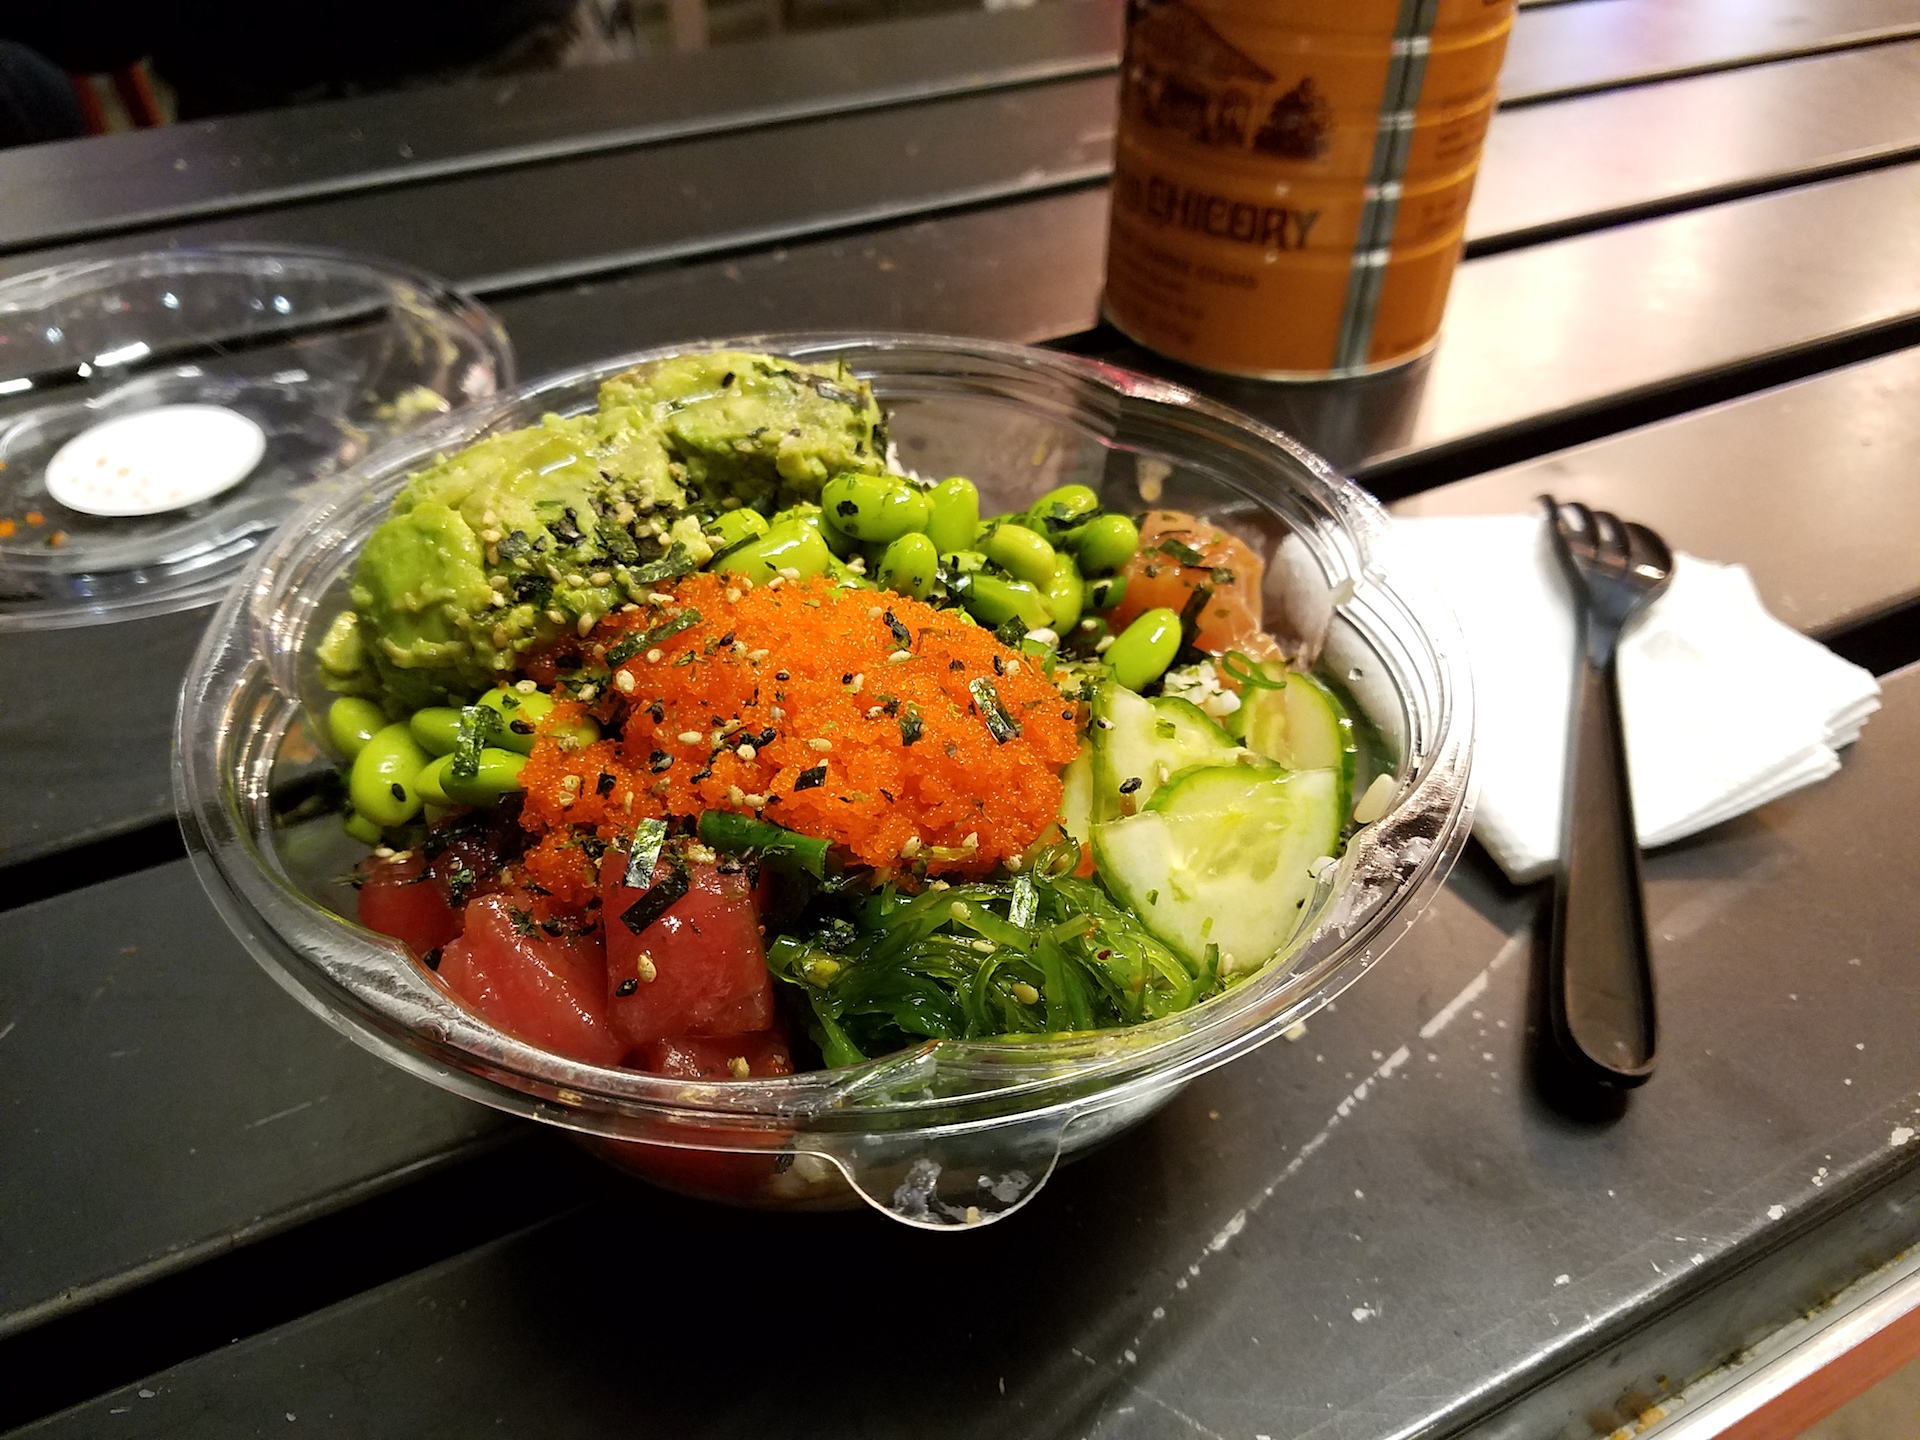 A Poke Delish bowl.